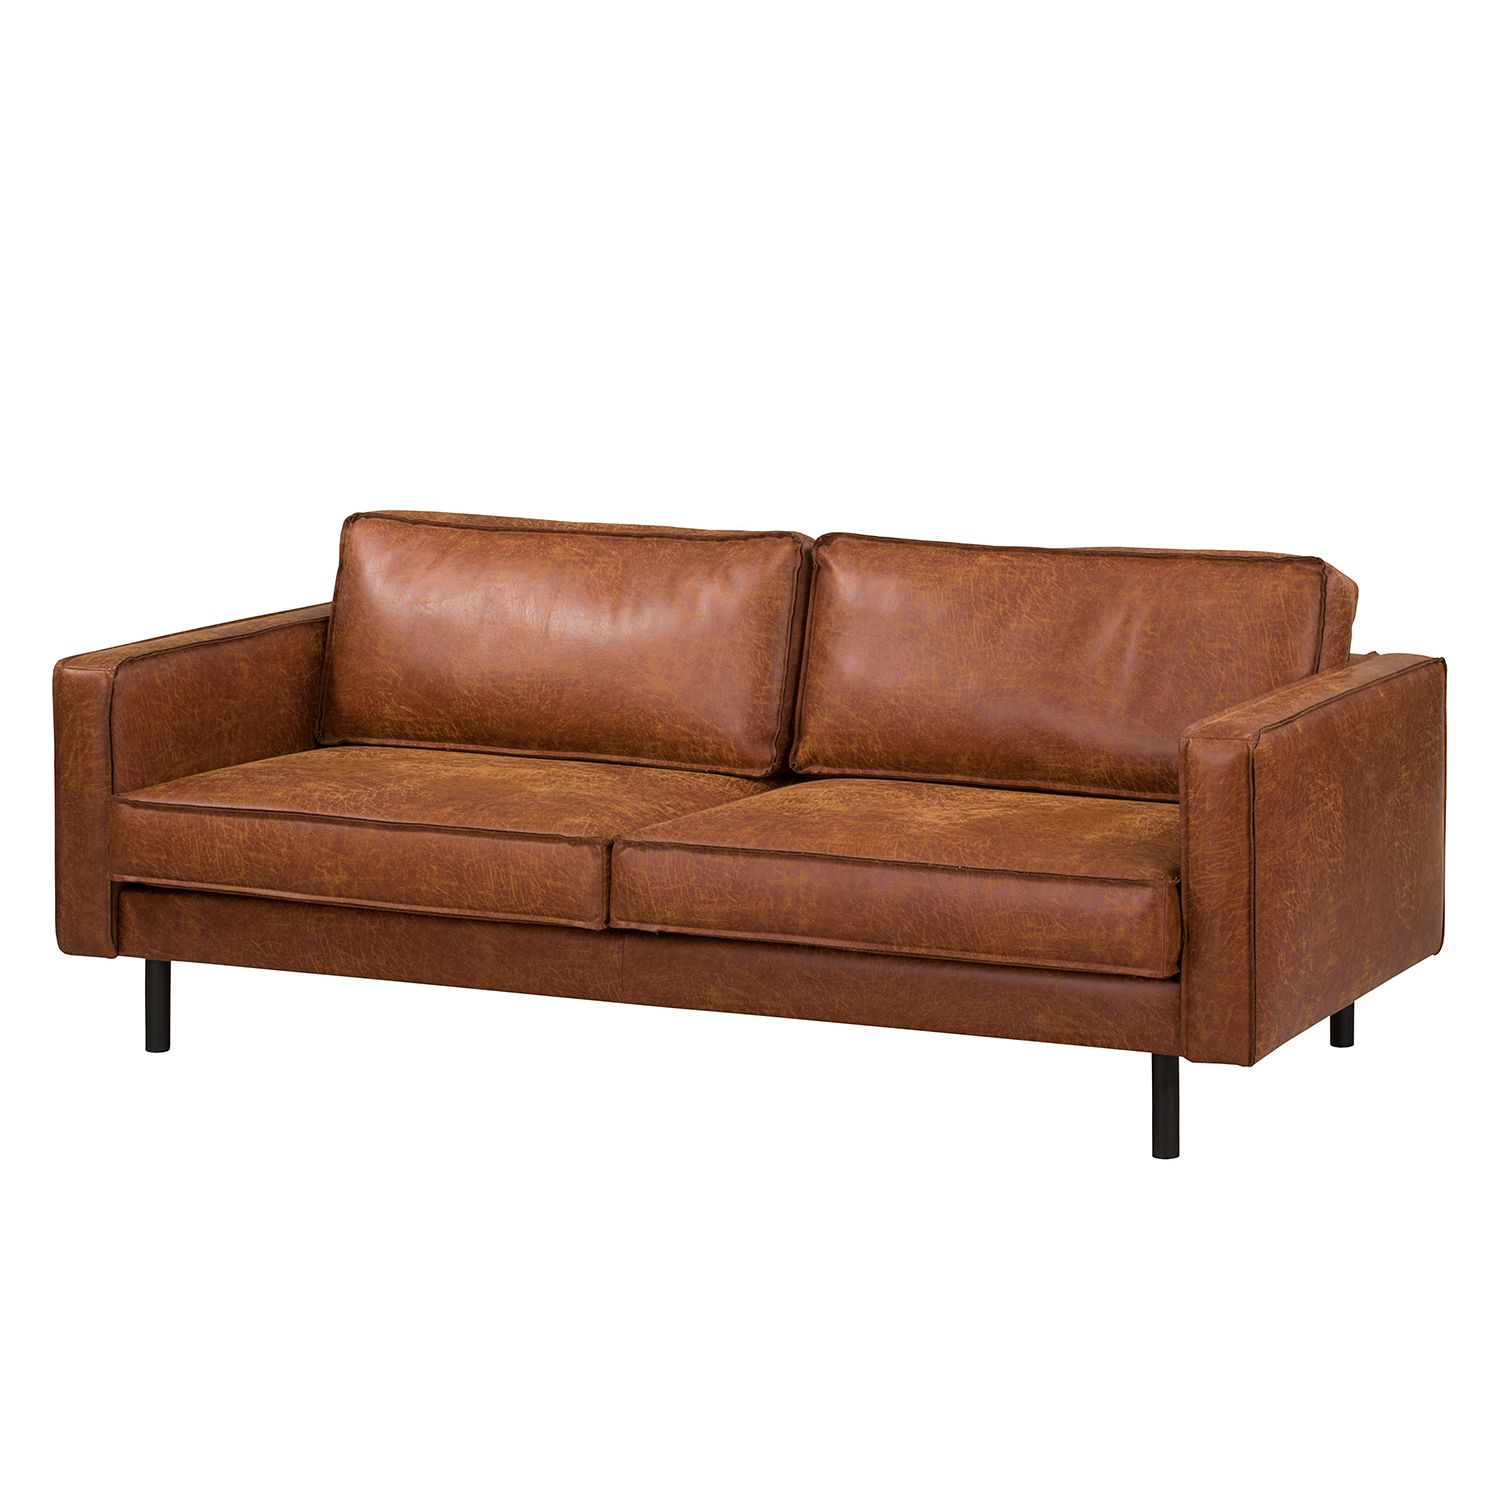 Sofa Fort Dodge 3 Sitzer Kaufen Home24 In 2020 Sofa Fort Sofa Sofas